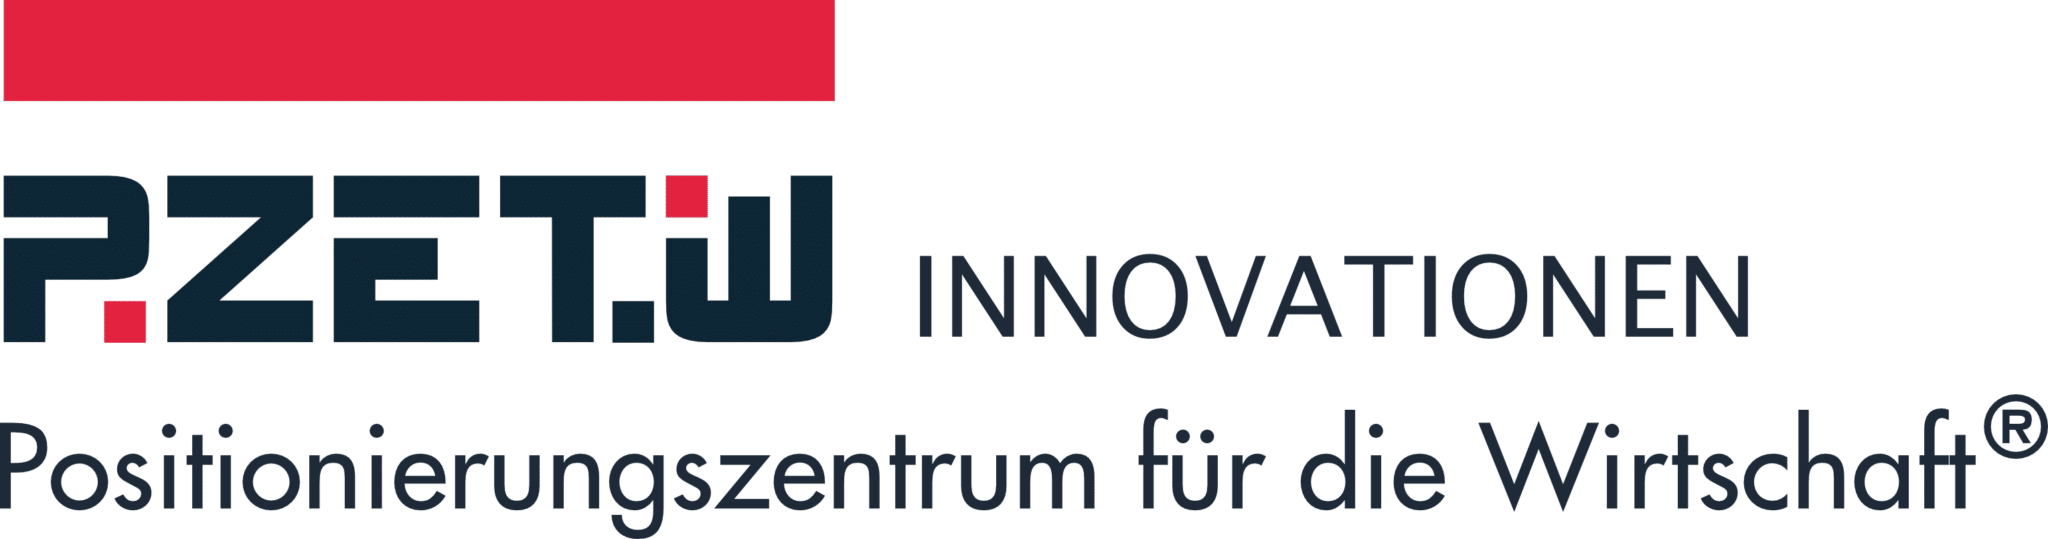 Positionierungszentrum für Innovationen - Strategien - Lena Saftig